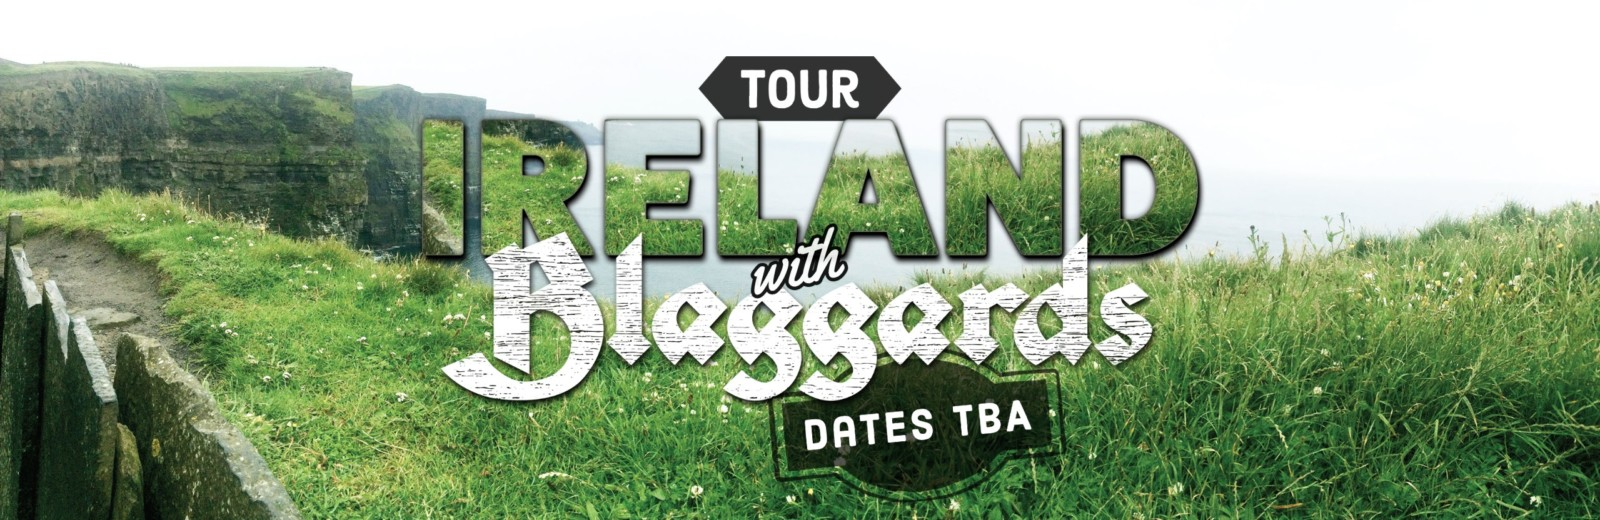 Tour IRELAND with Blaggards October 2021